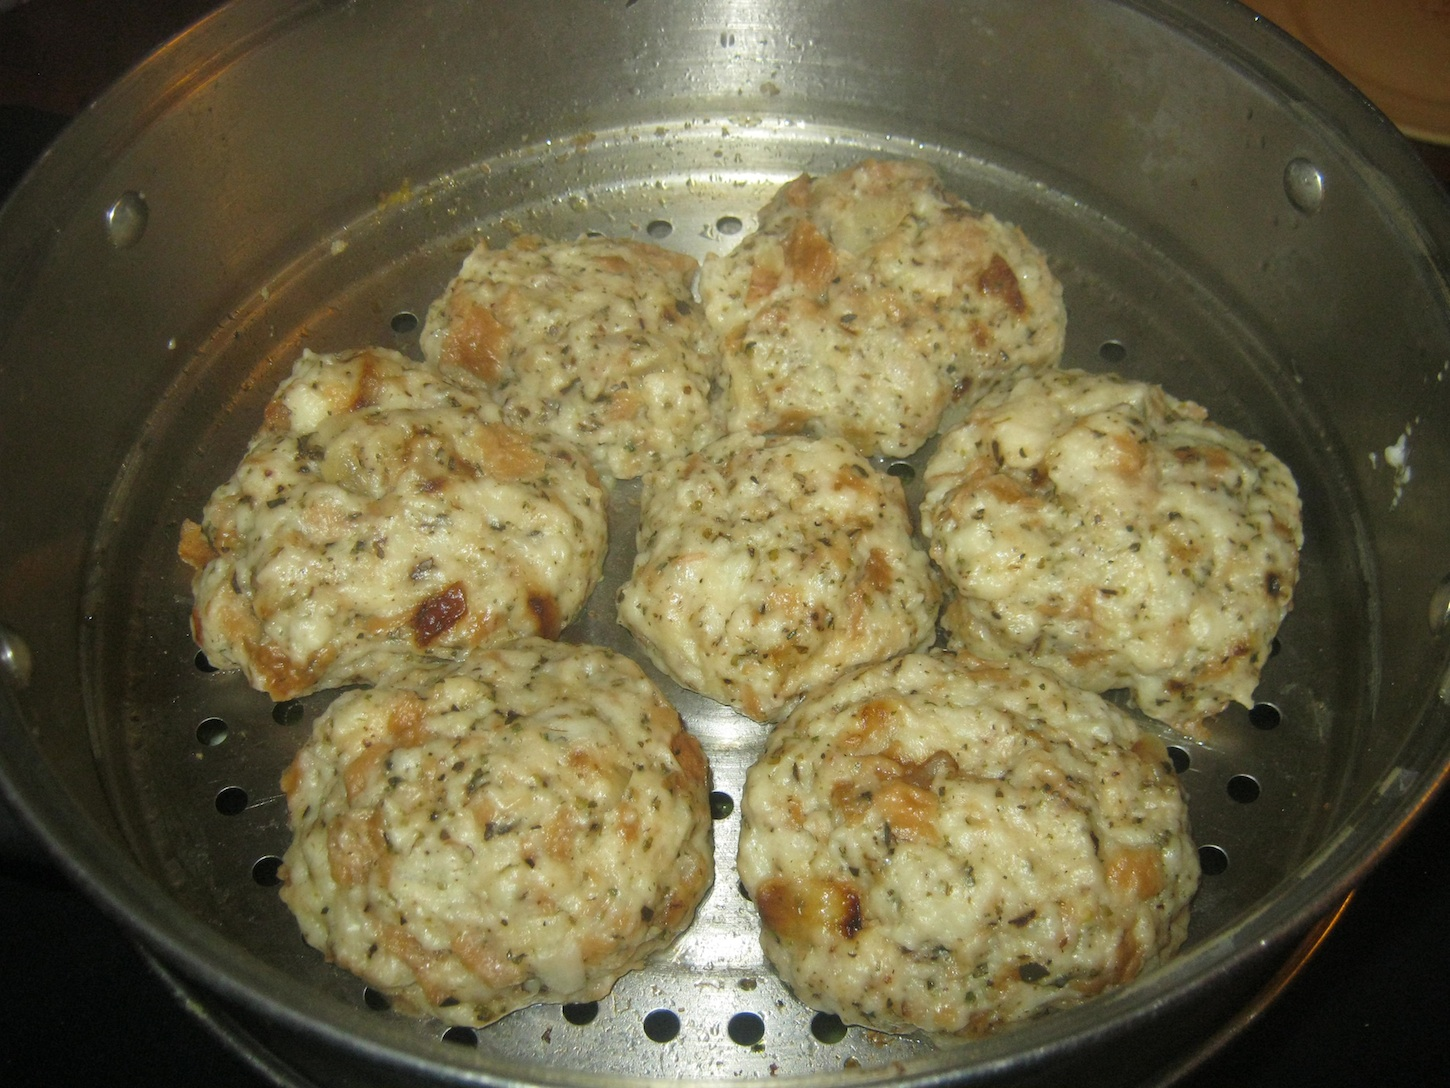 Bread dumplings in a steaming tray.